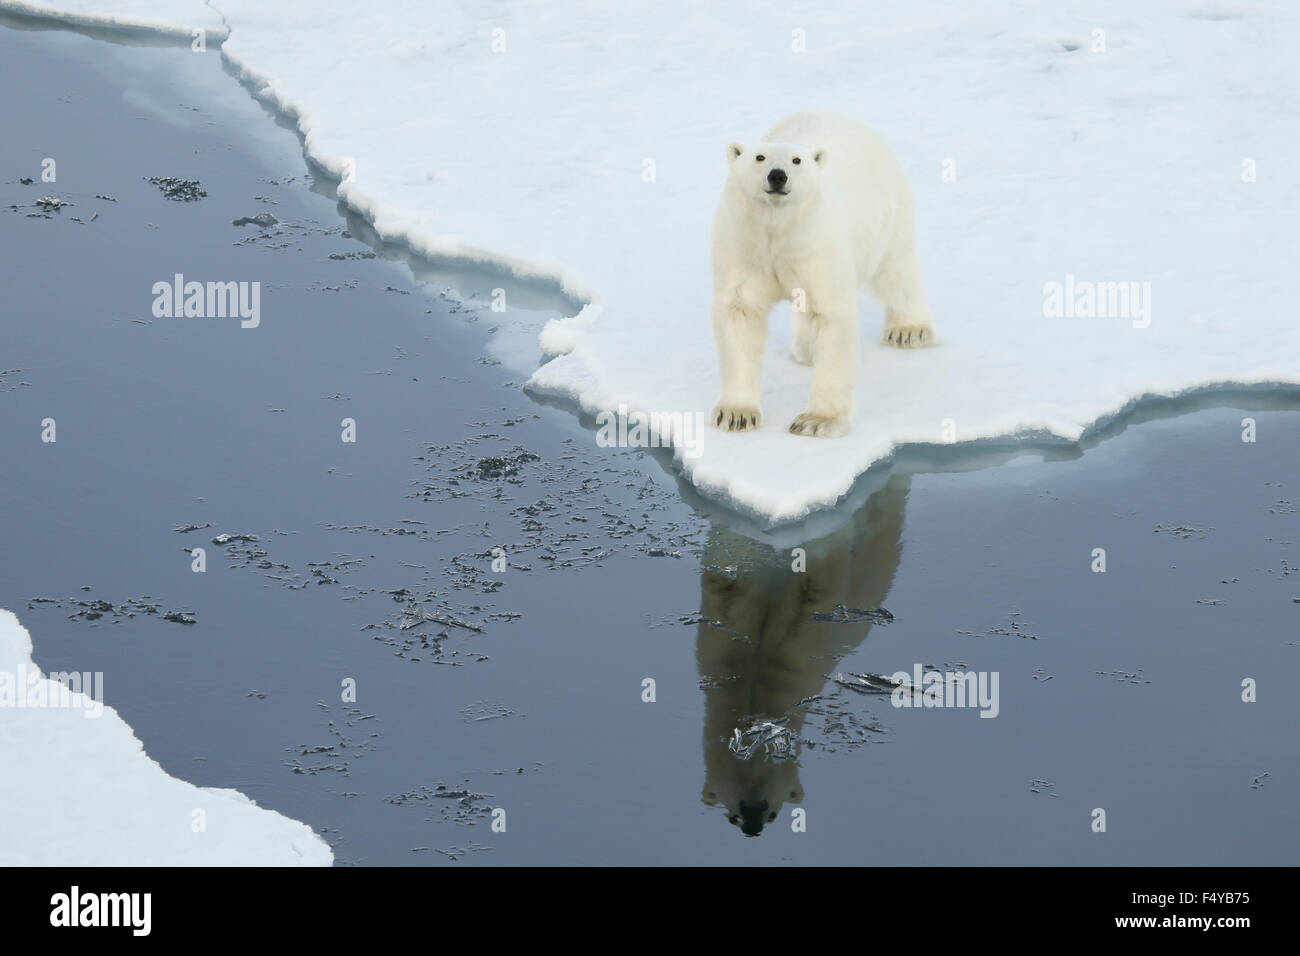 Greenland, Scoresby Sound, polar bear stands on the edge of sea ice, looking up with reflection in the water. - Stock Image